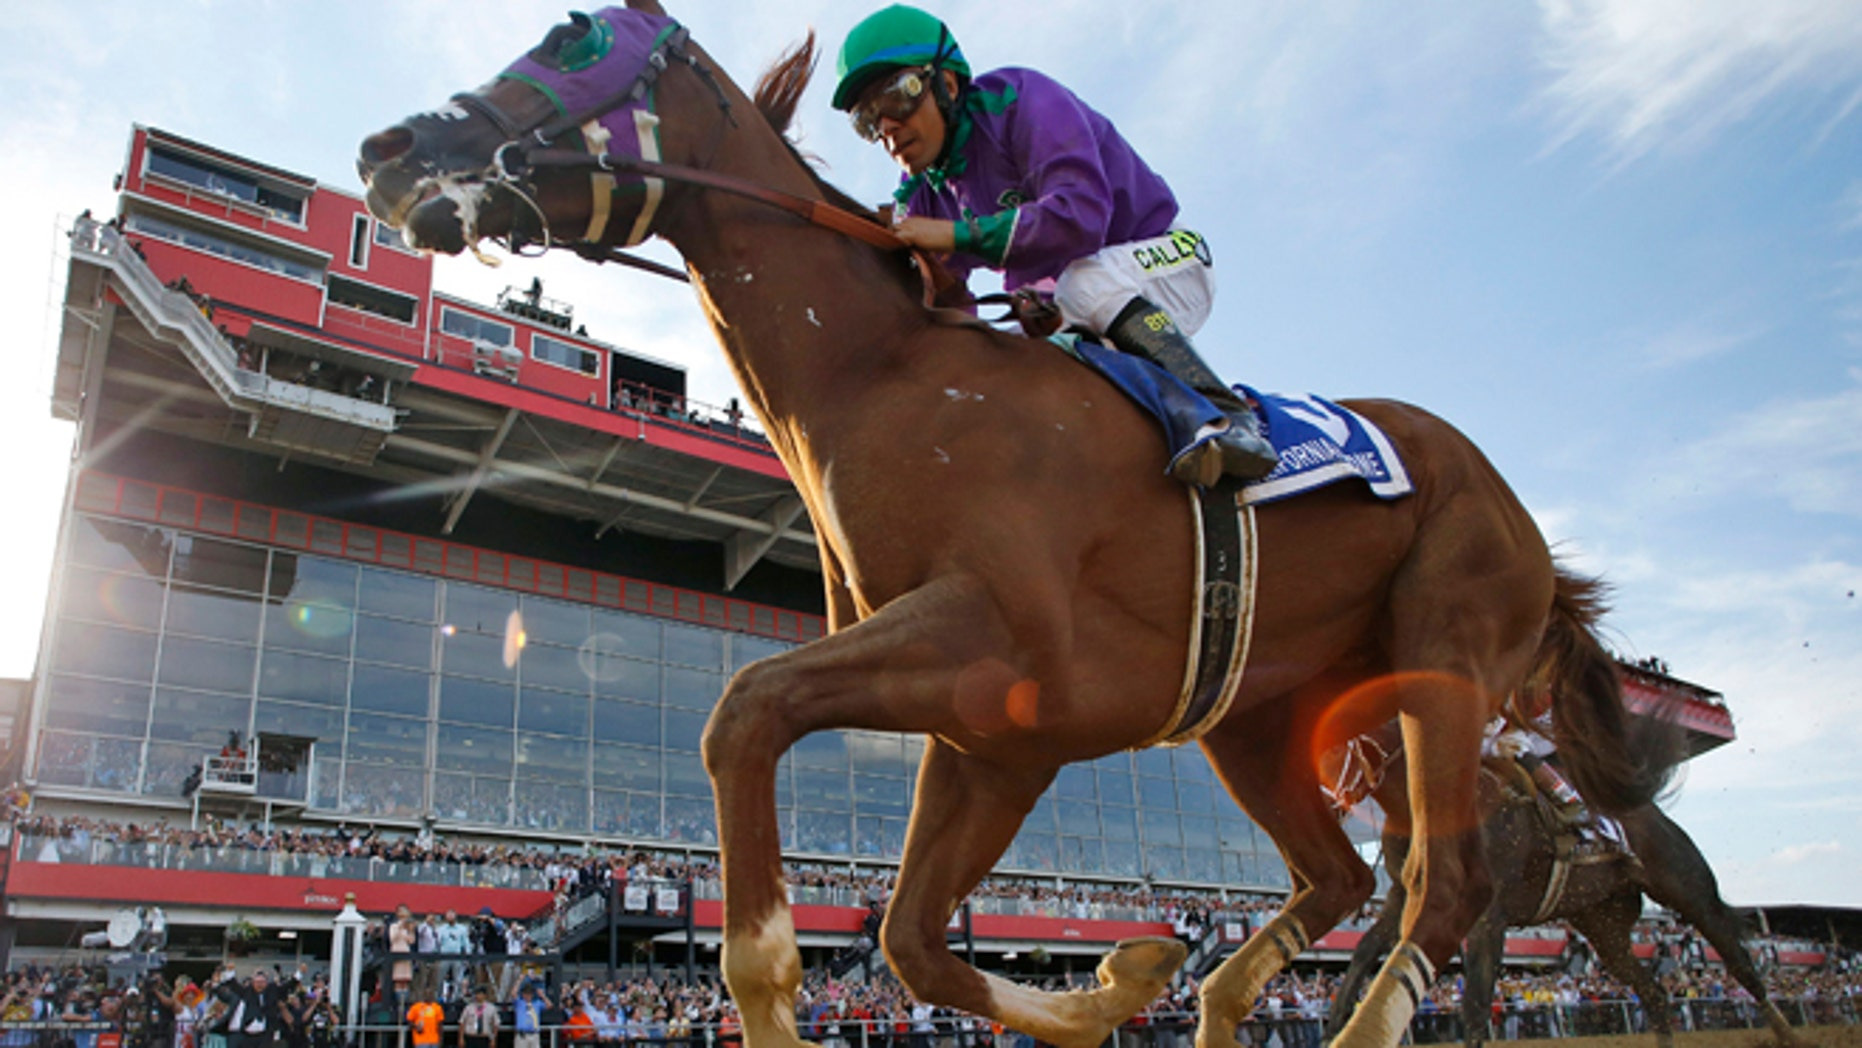 May 17, 2014: California Chrome, ridden by jockey Victor Espinoza, wins the 139th Preakness Stakes horse race at Pimlico Race Course in Baltimore.